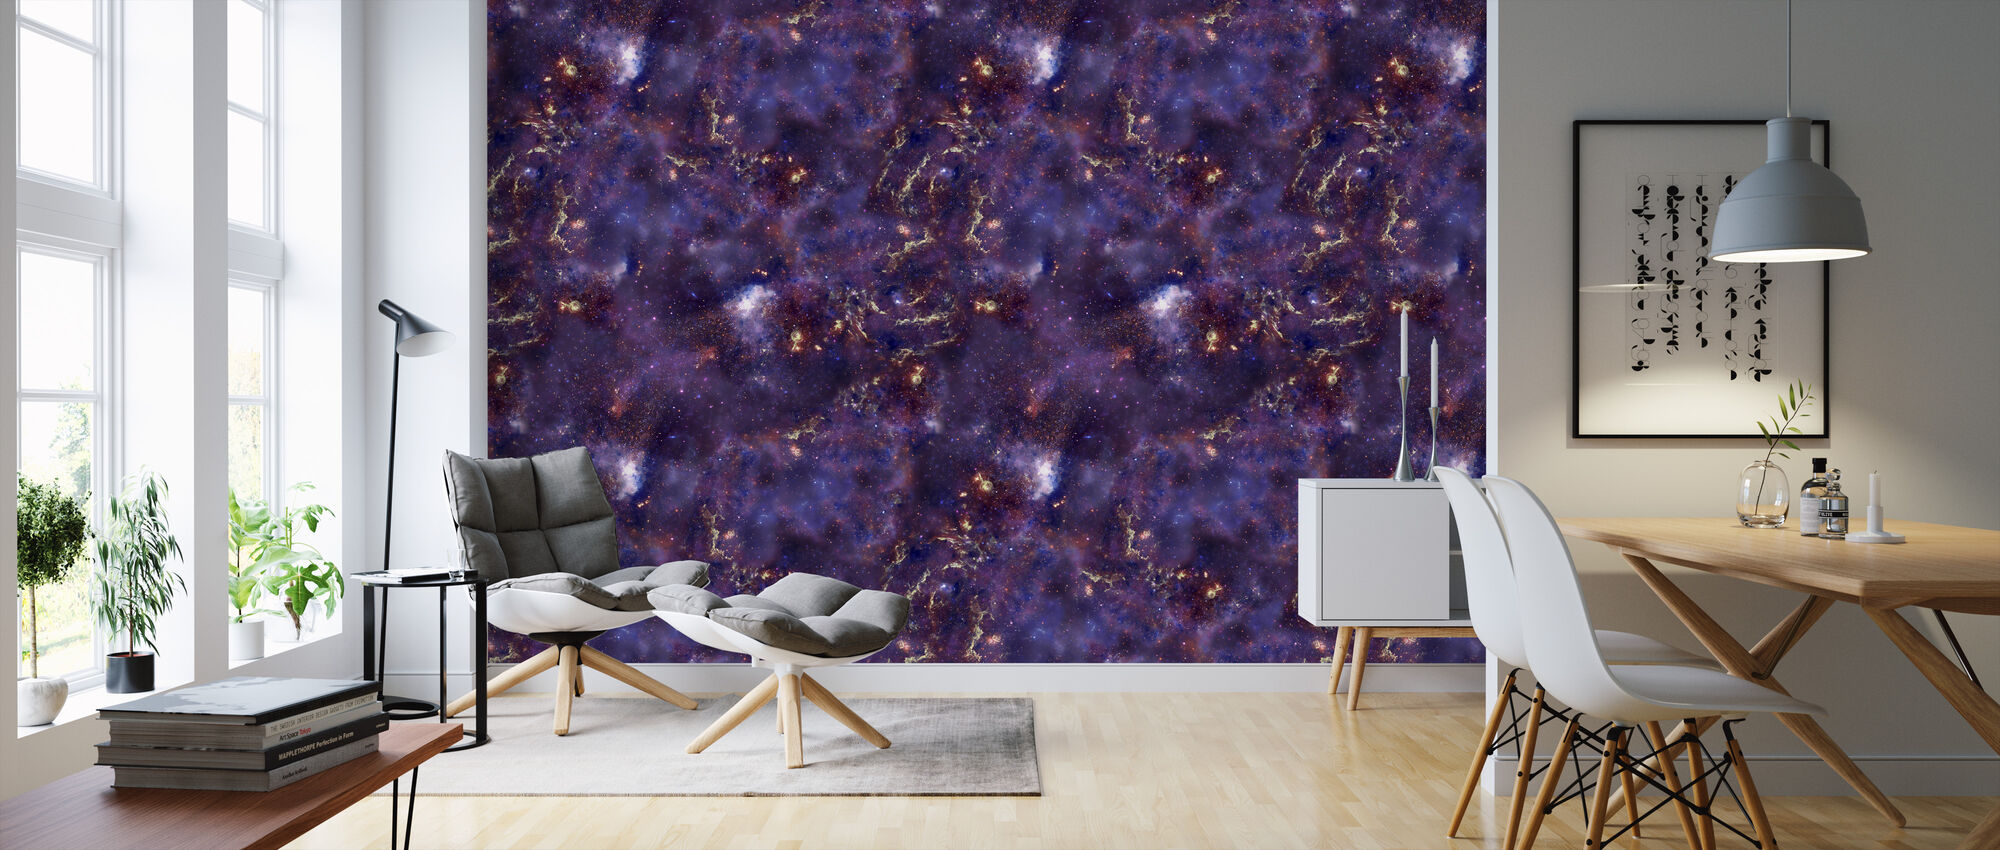 Galaxy Lord - Wallpaper - Living Room